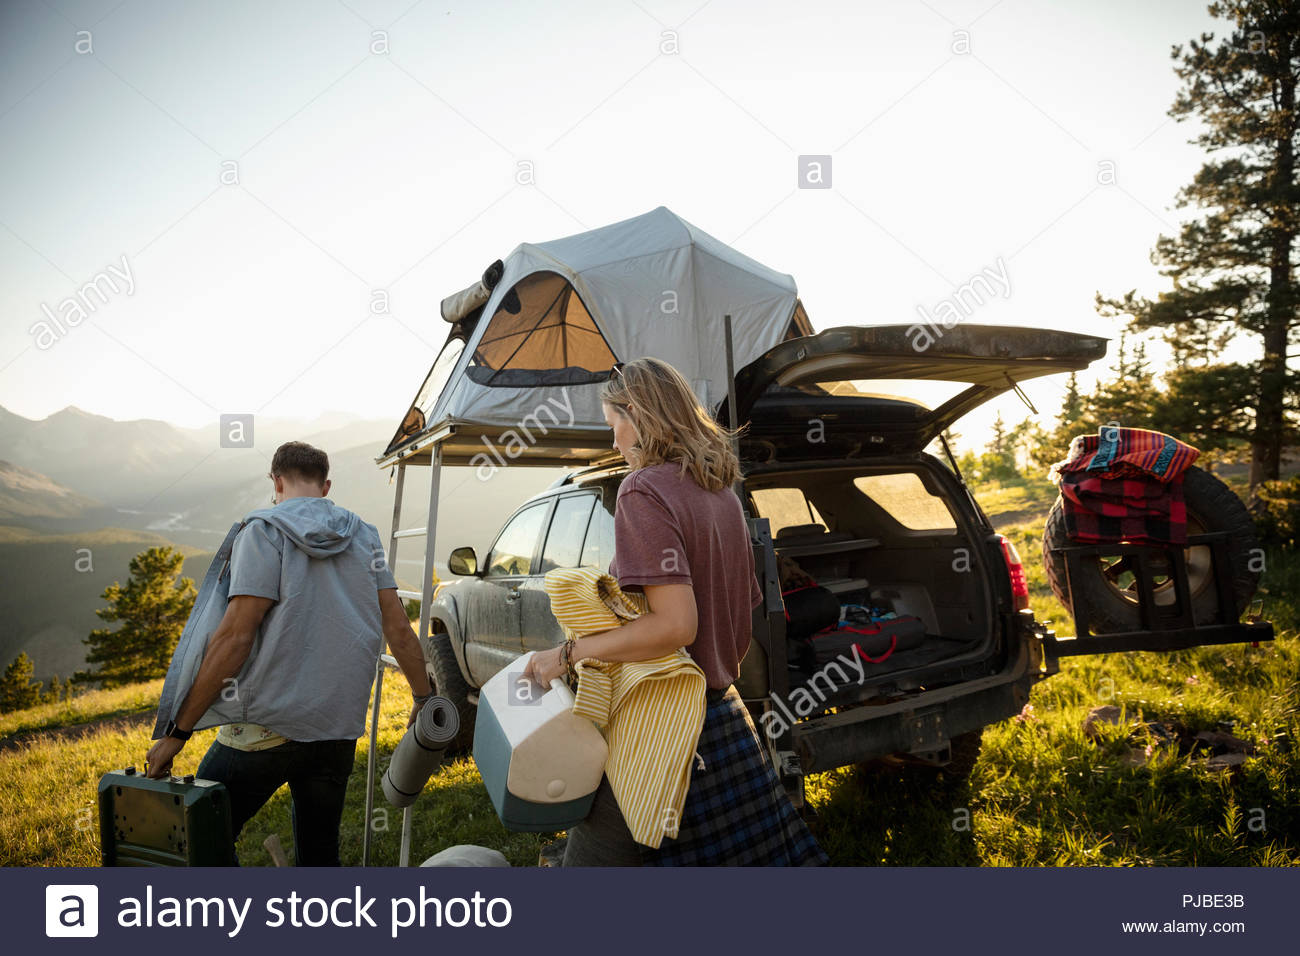 Couple c&ing unloading SUV with rooftop tent in sunny field Alberta Canada & Couple camping unloading SUV with rooftop tent in sunny field ...